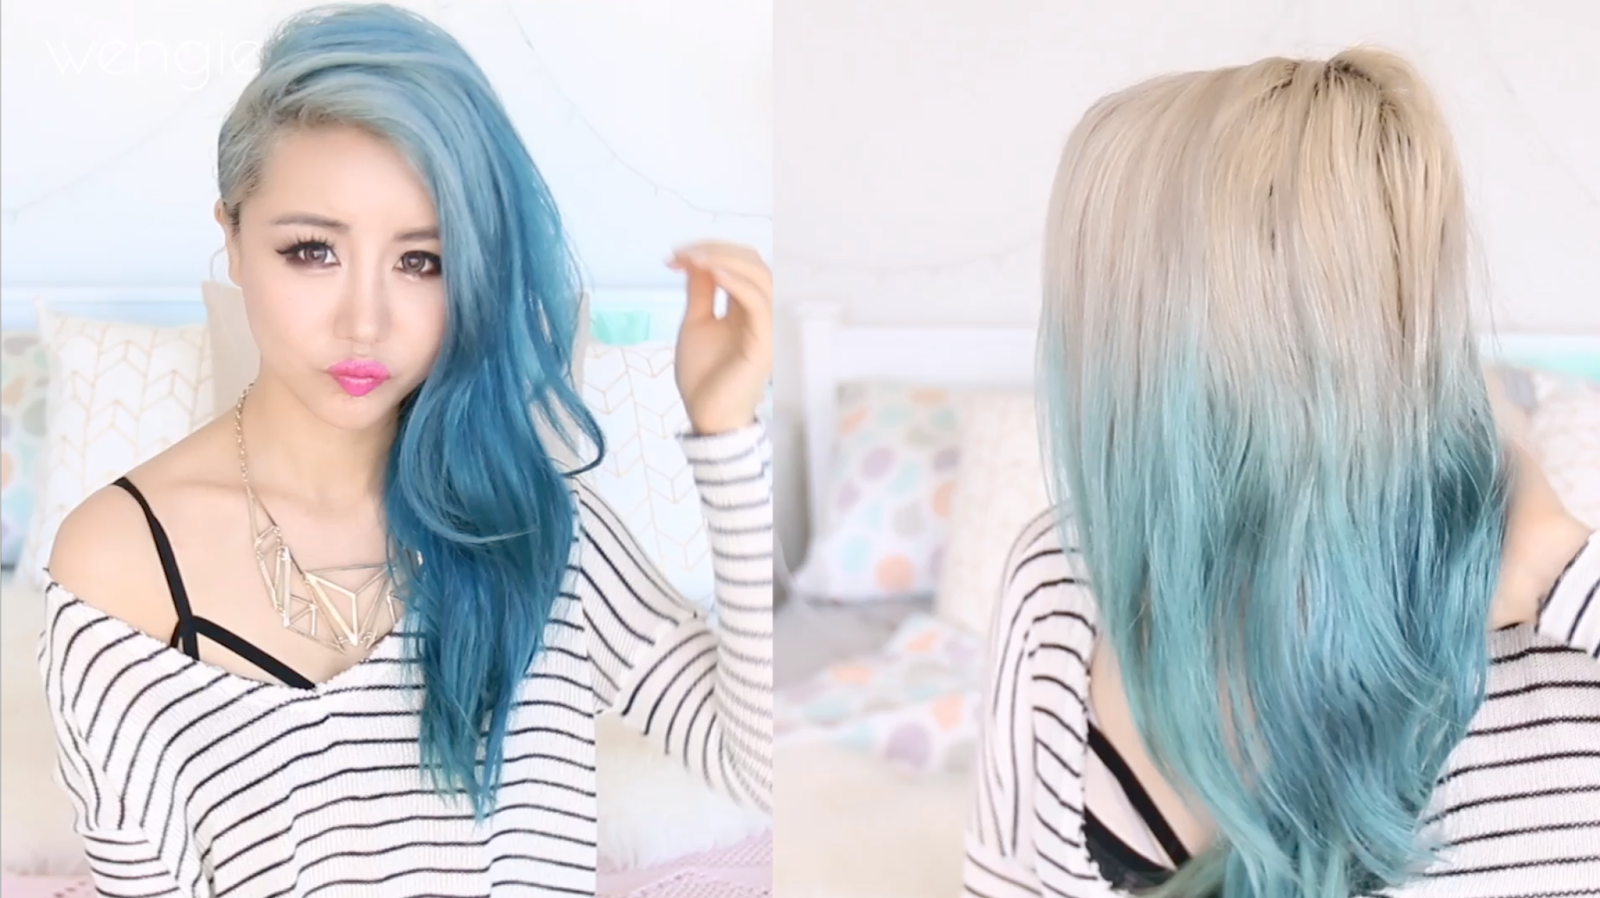 Removing Teal Hair Color